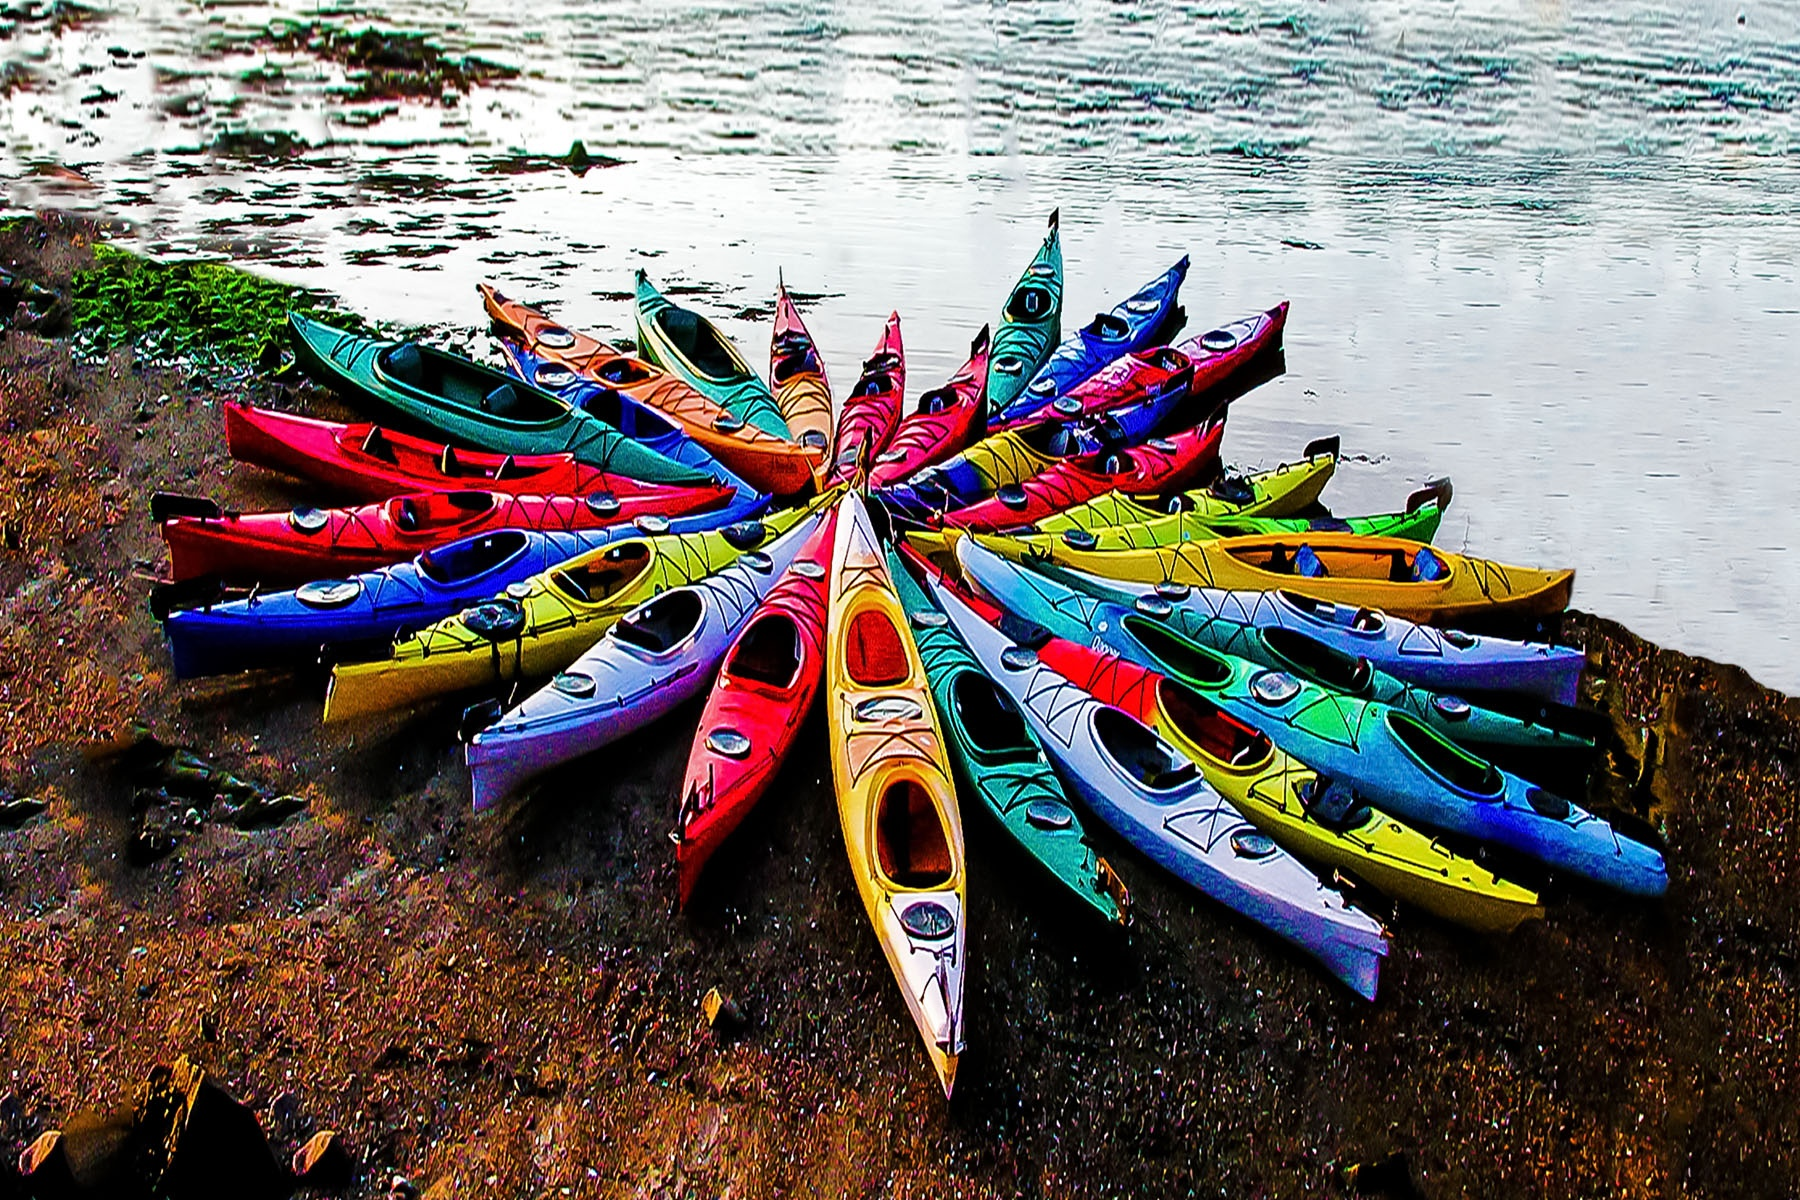 KAYAKS - People often ask if I set this up. I wish I was that creative, and could answer yes. But, this is just the way they were that morning at the kayak rental place in Rockport, Massachusetts.